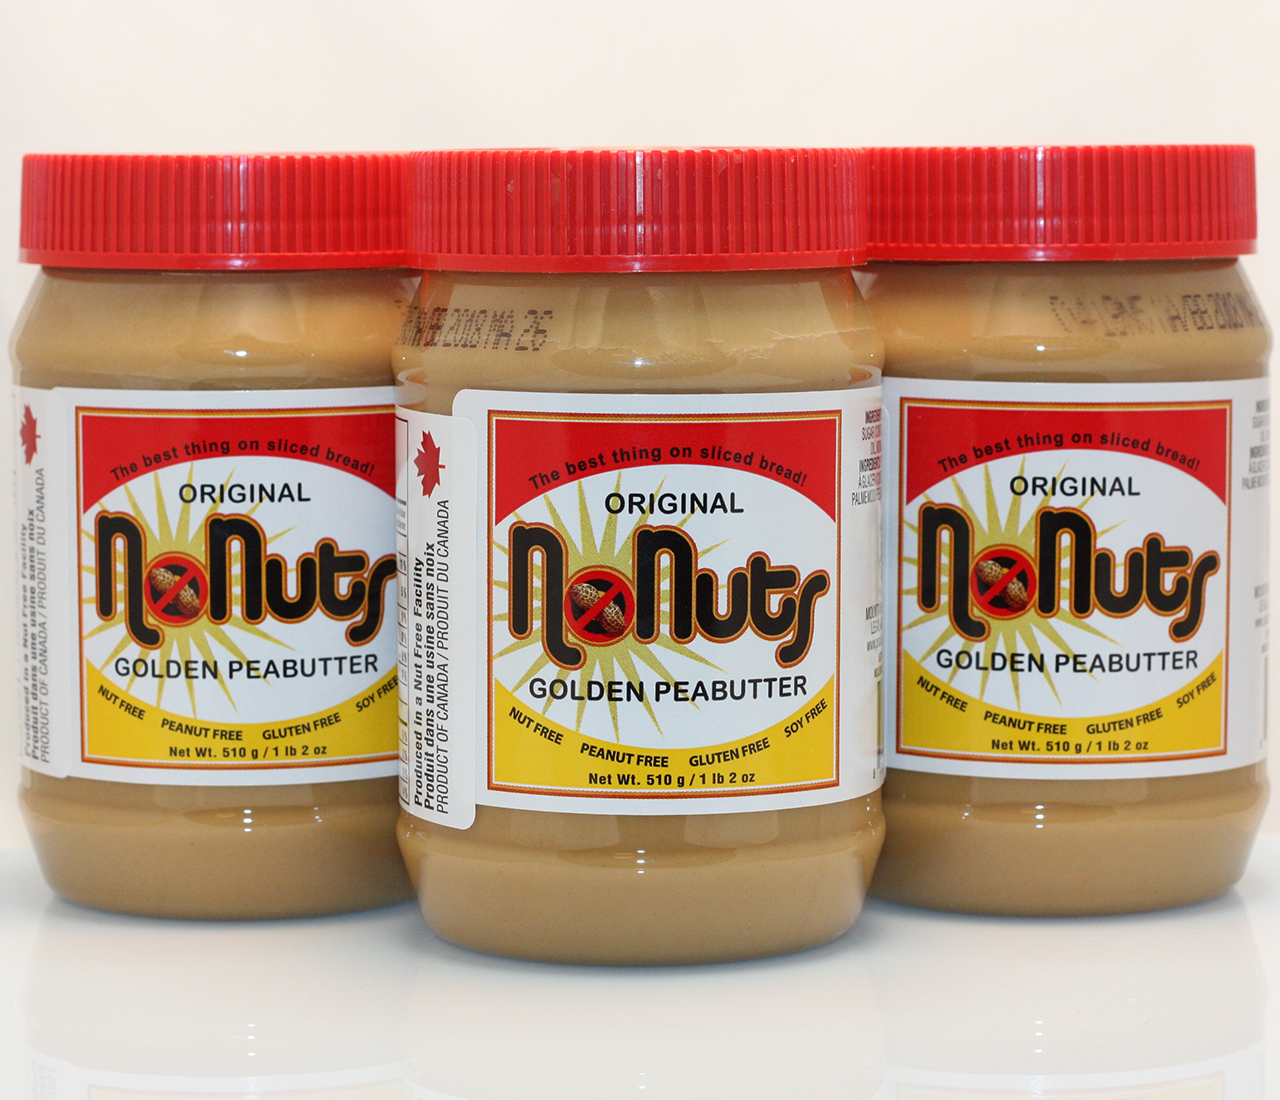 Original No Nuts Golden Peabutter